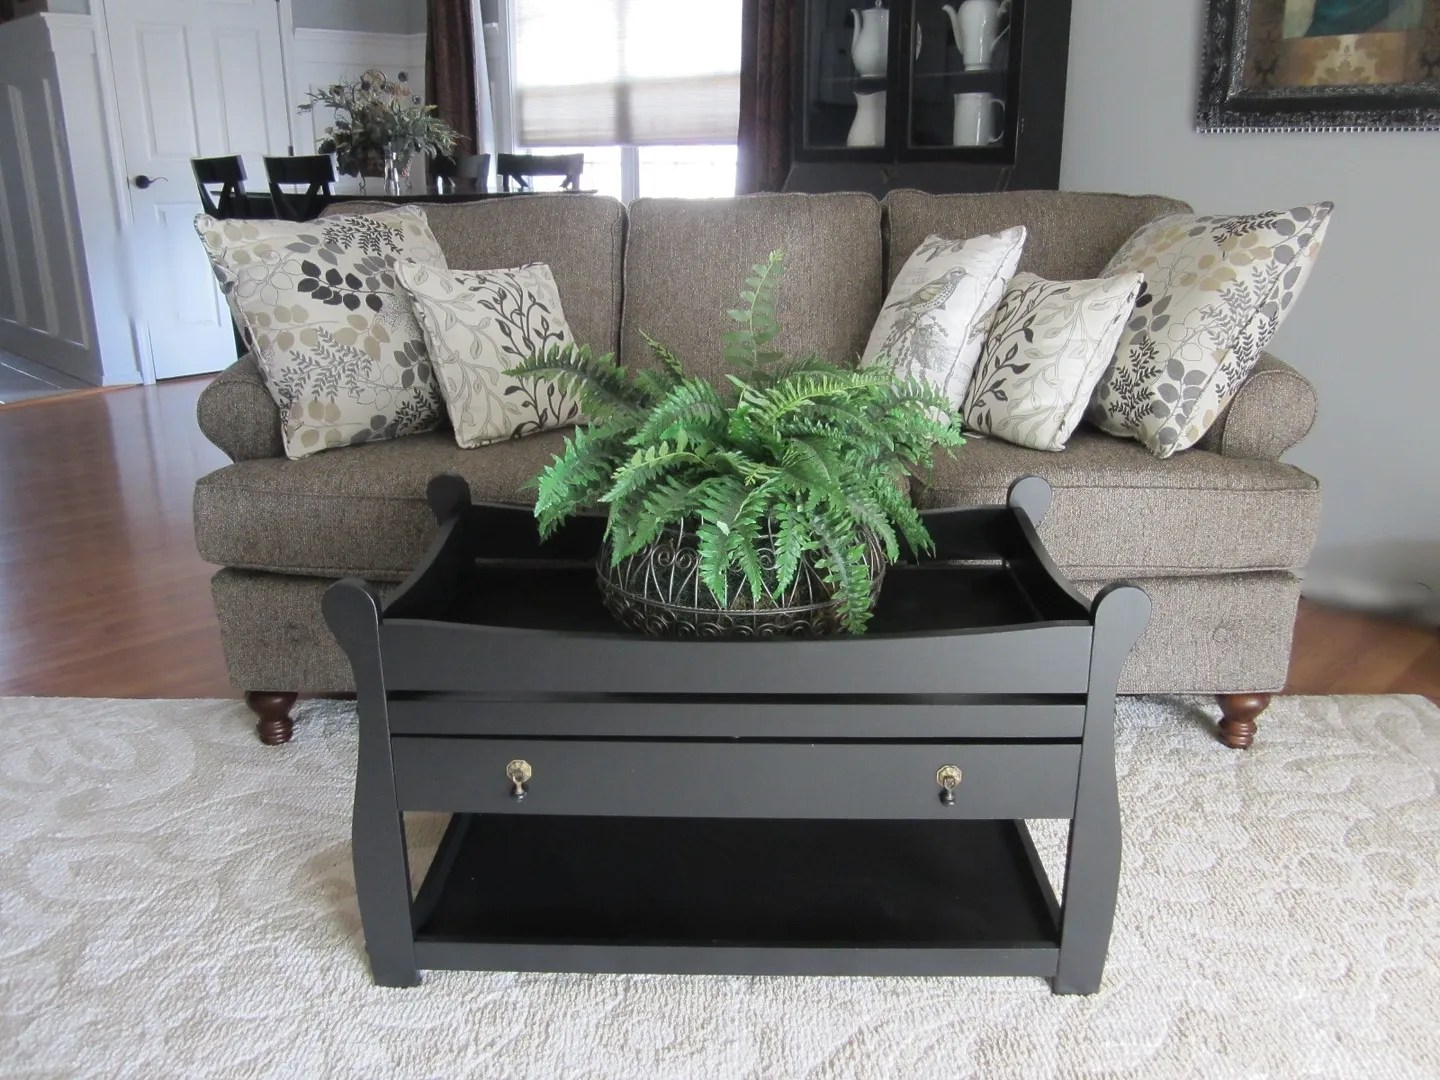 Home Staging In Bloomington Illinois | Redesign, organization and ...